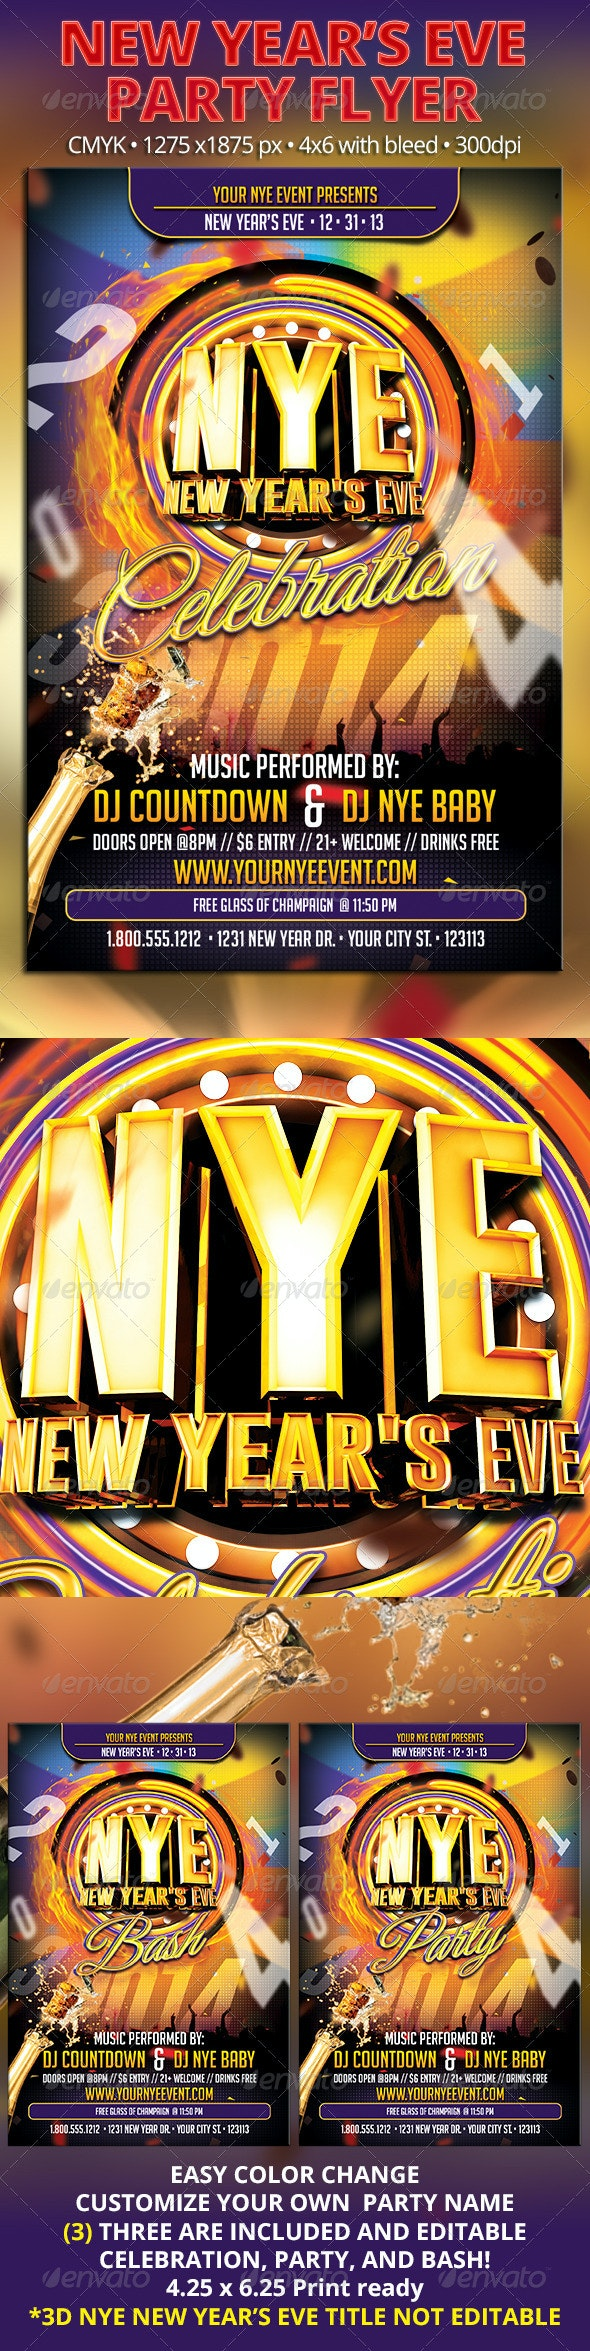 NYE New Year's Eve Part Flyer - Holidays Events